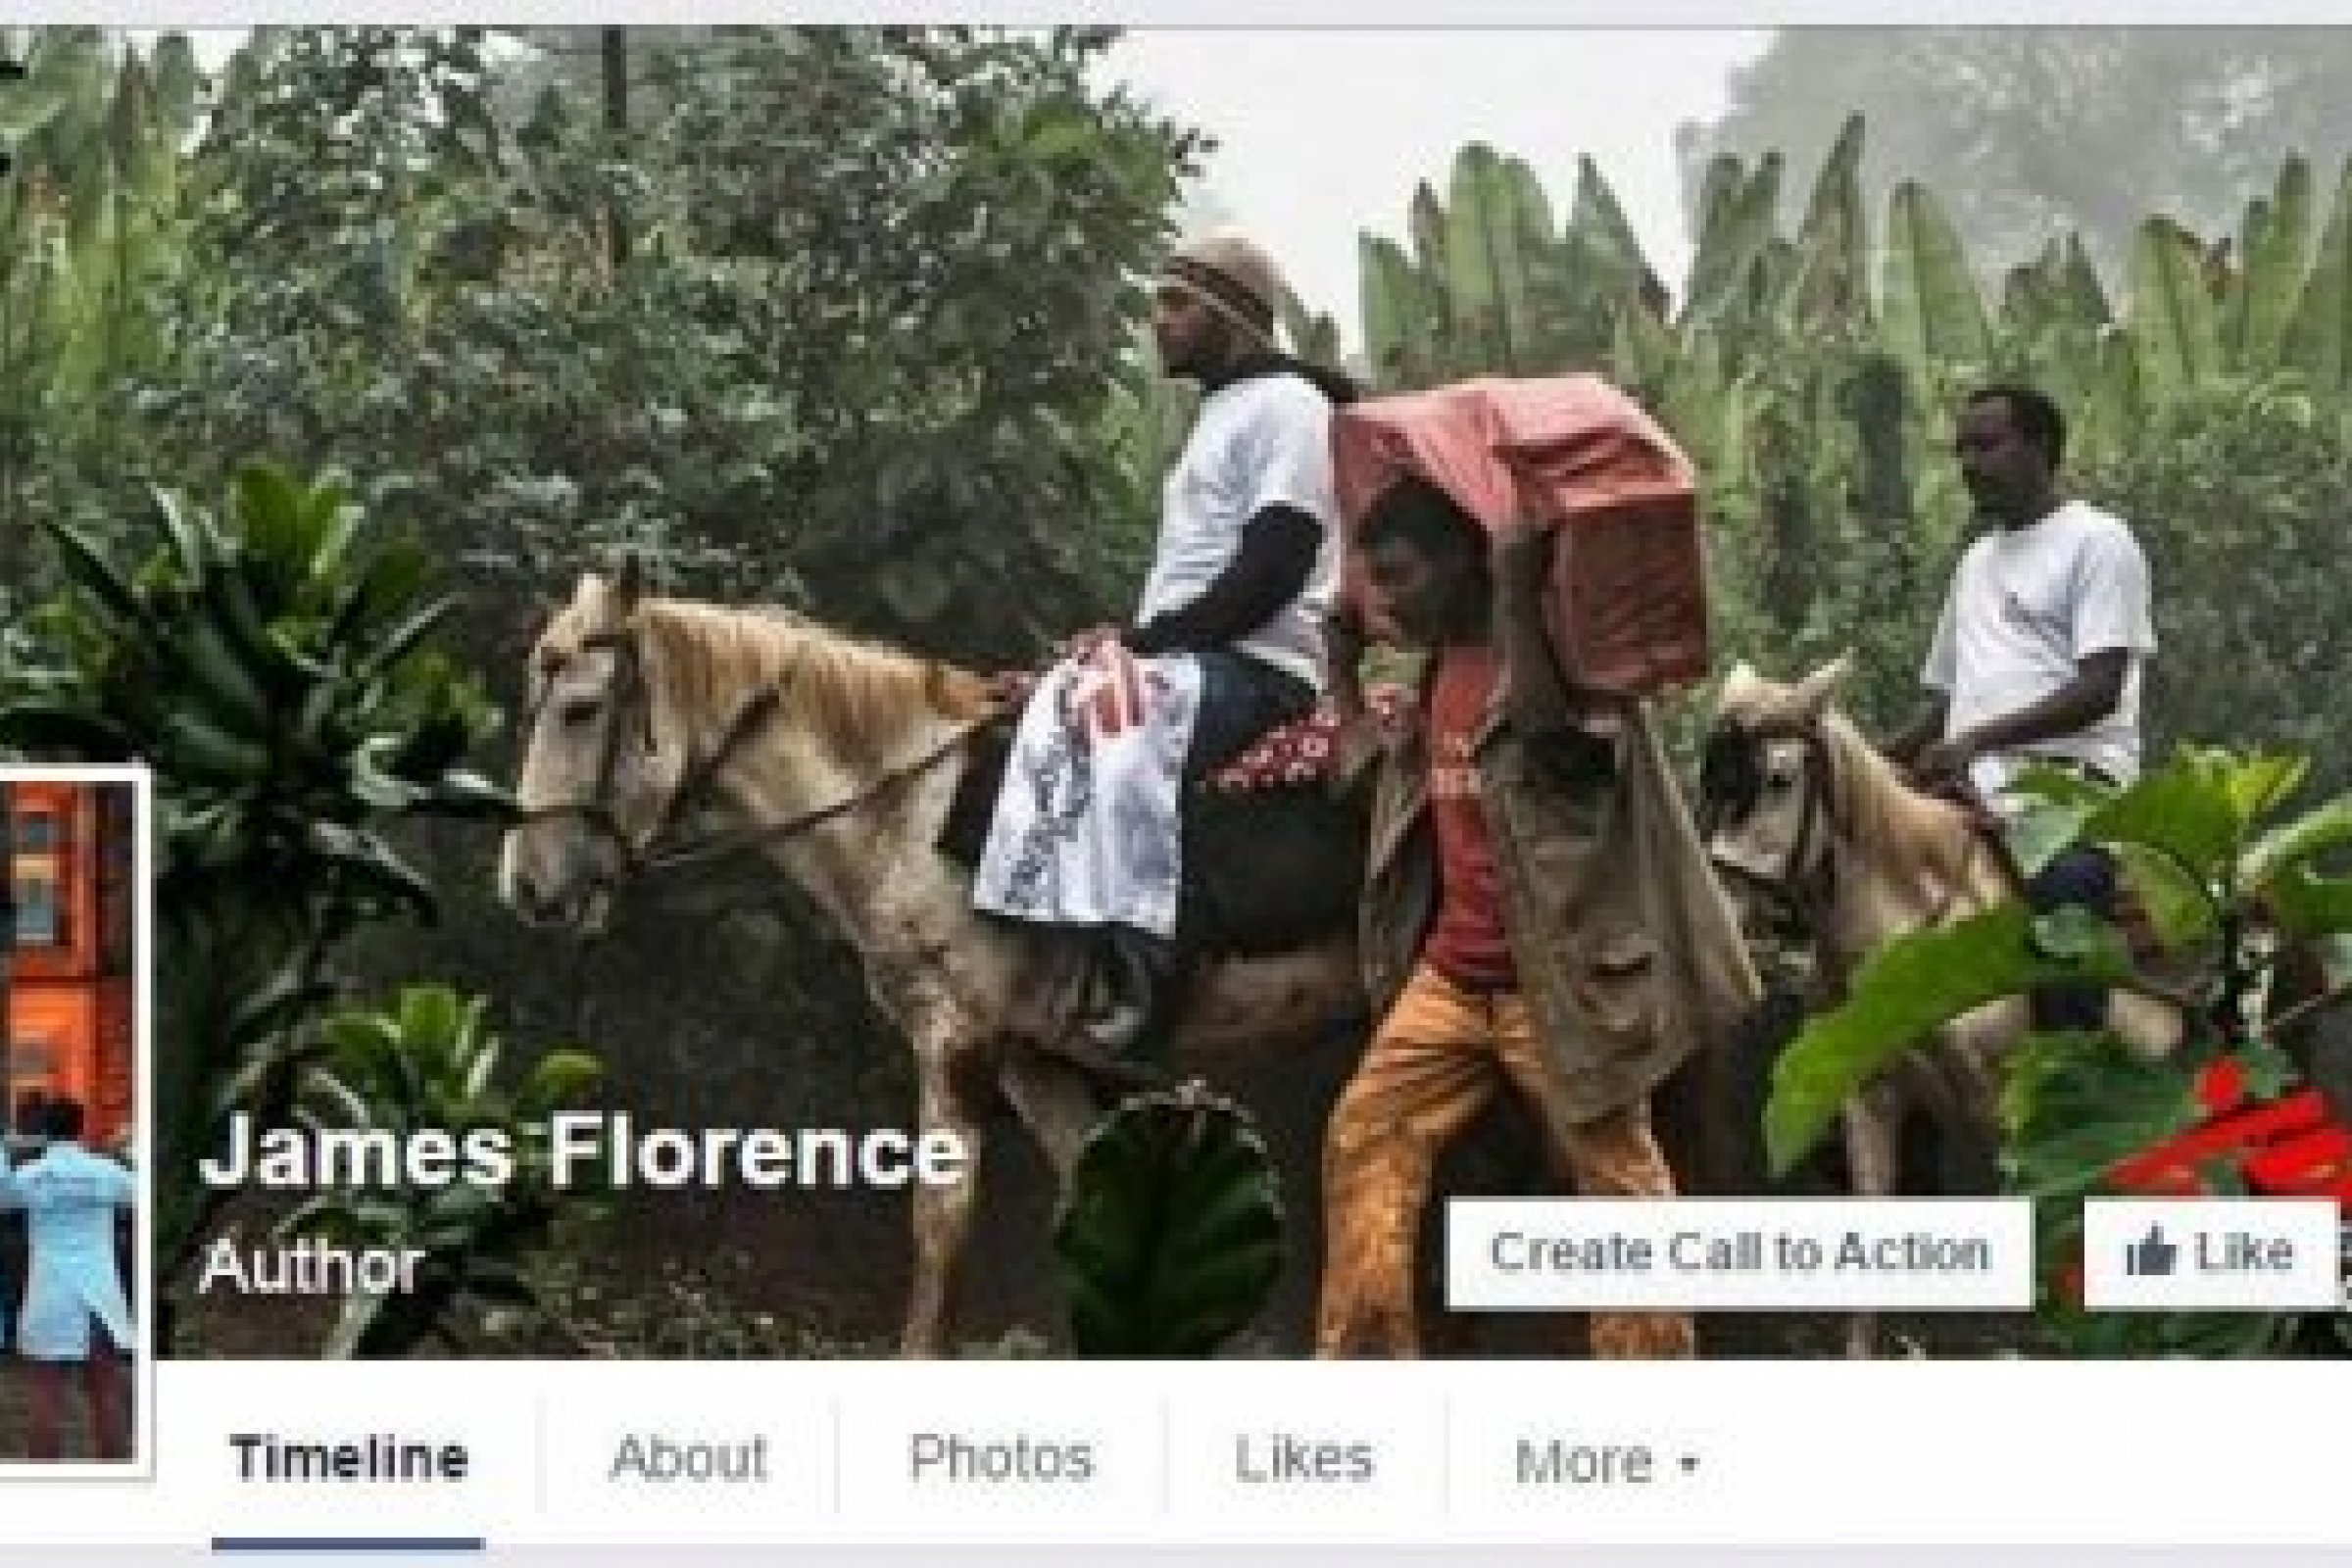 An example of an MSF Facebook banner